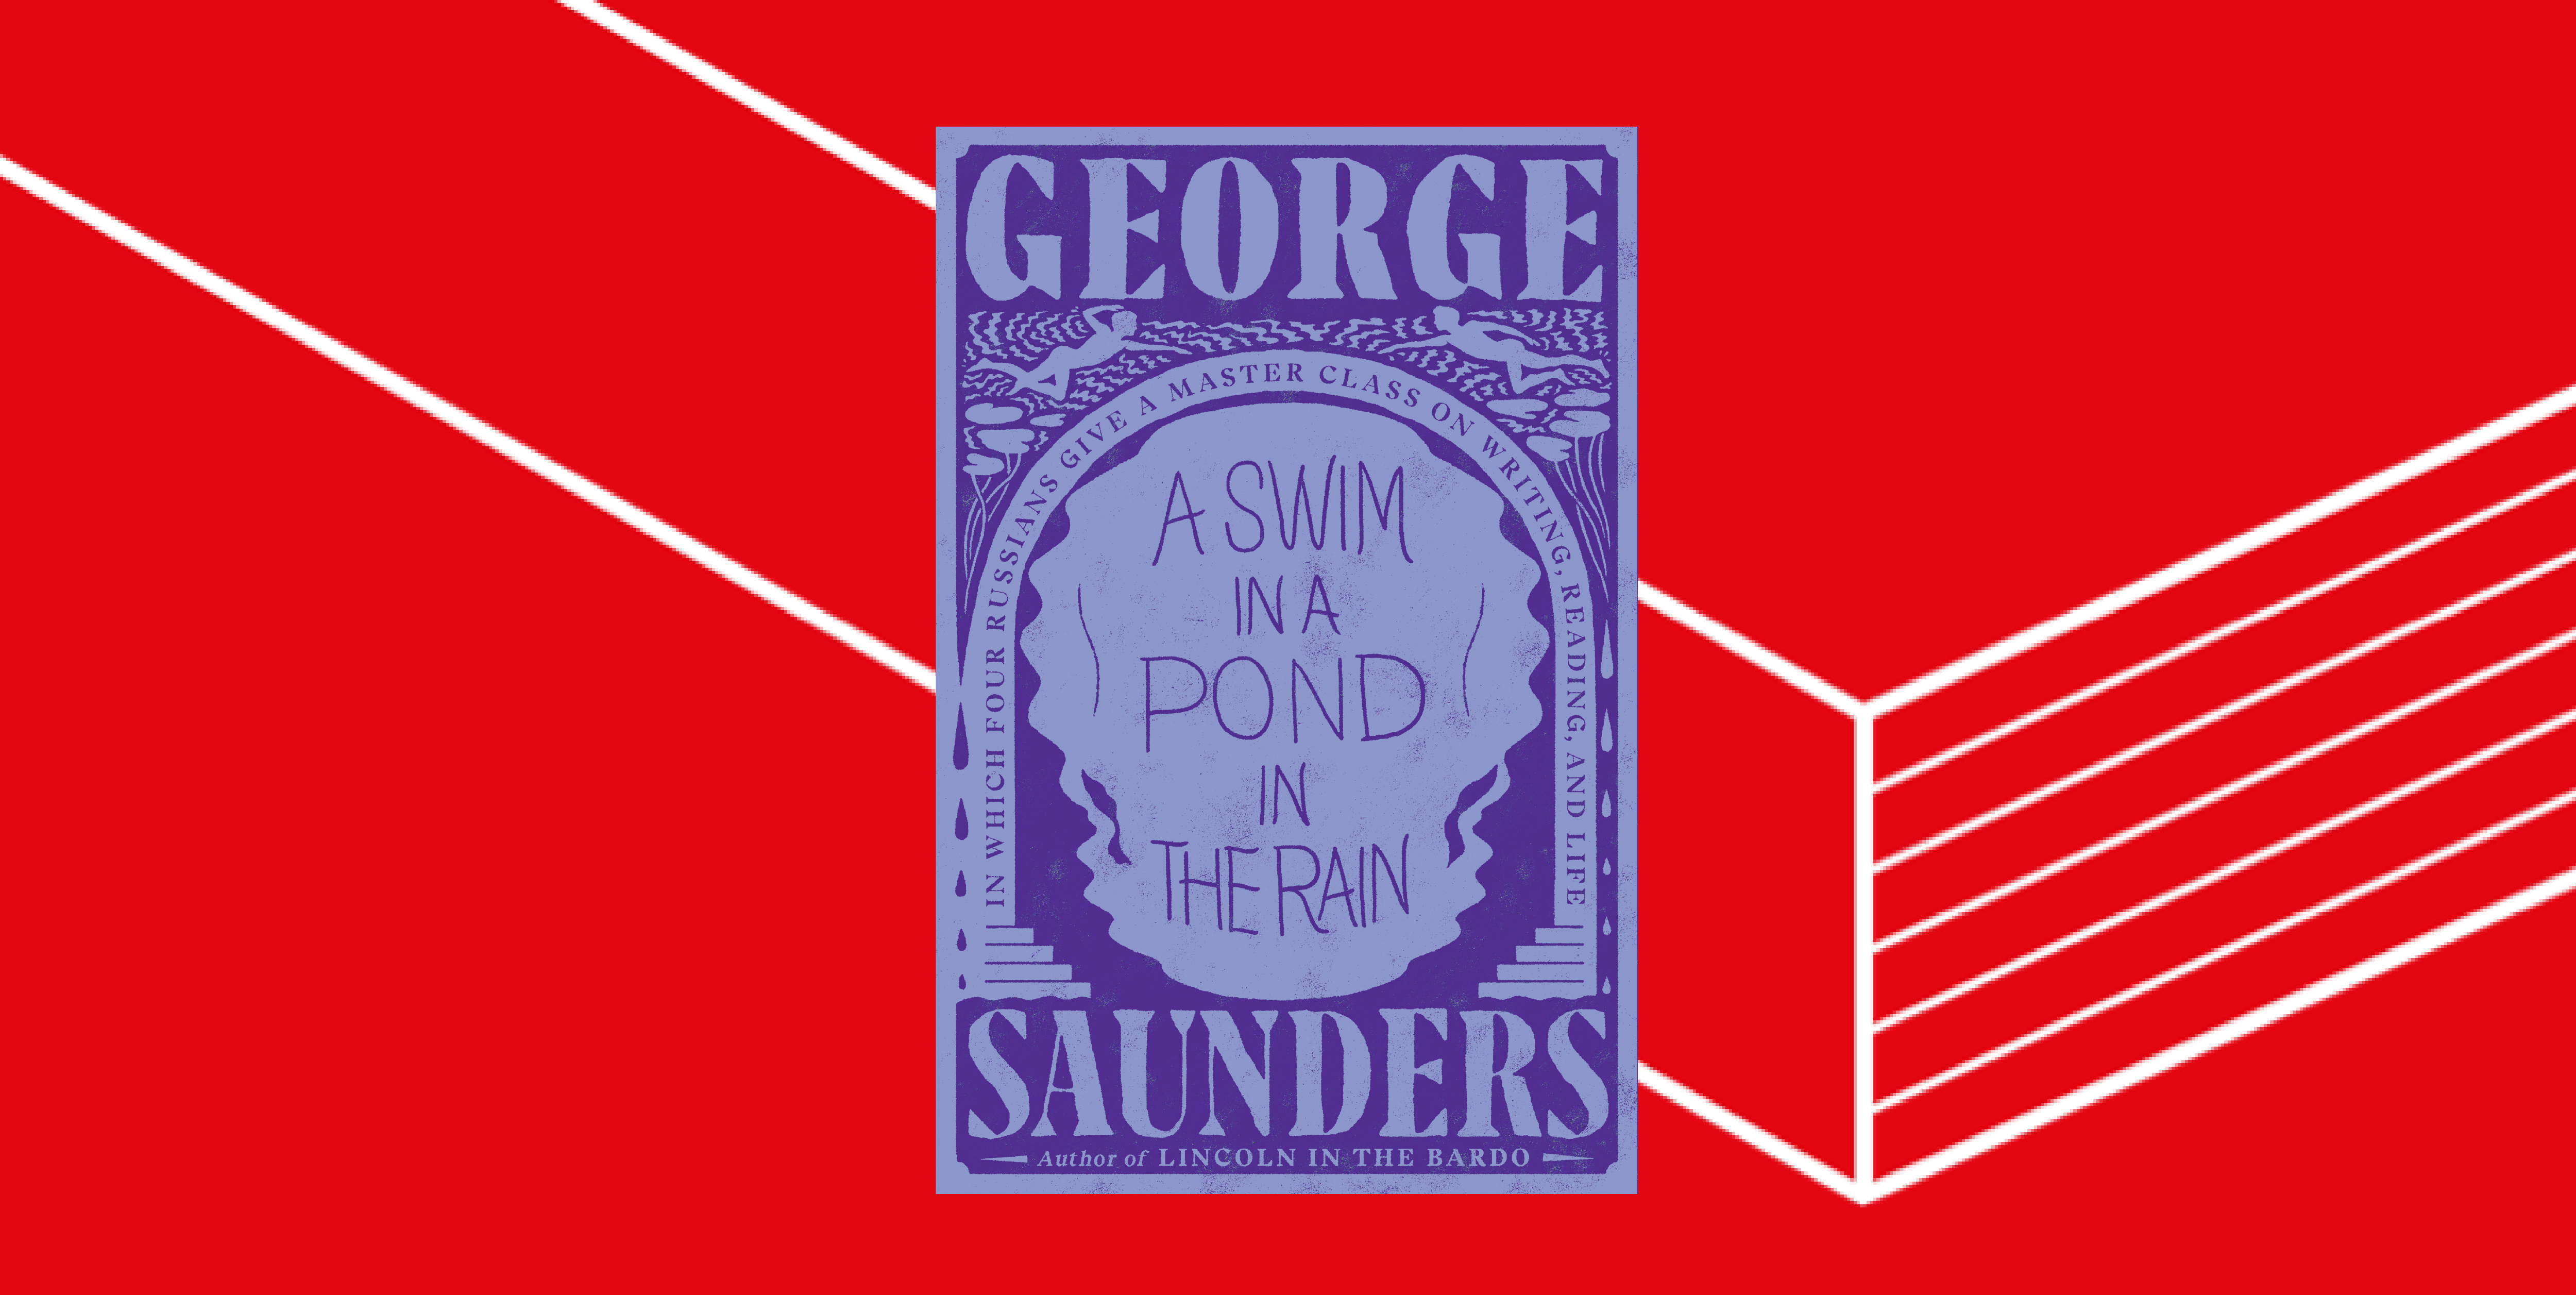 Image of the cover of George Saunder's 'A Swim in a Pond in the Rain' superimposed on a line image of an open book.'